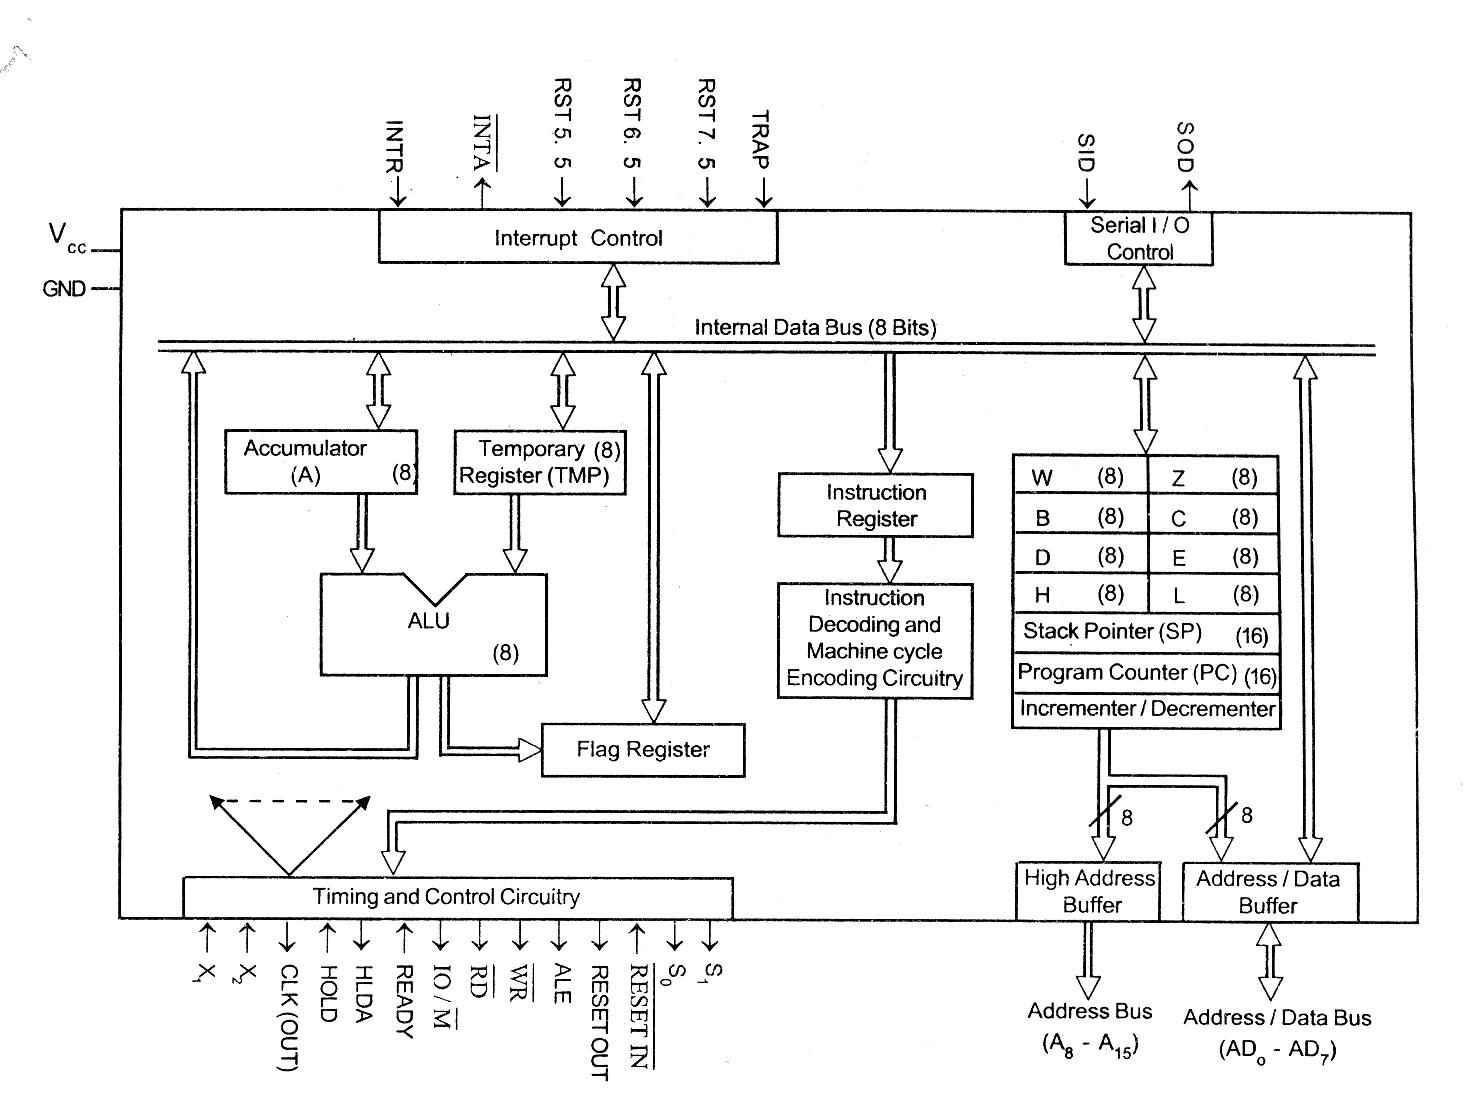 A media to get all datas in electrical science for Architecture 8085 microprocessor